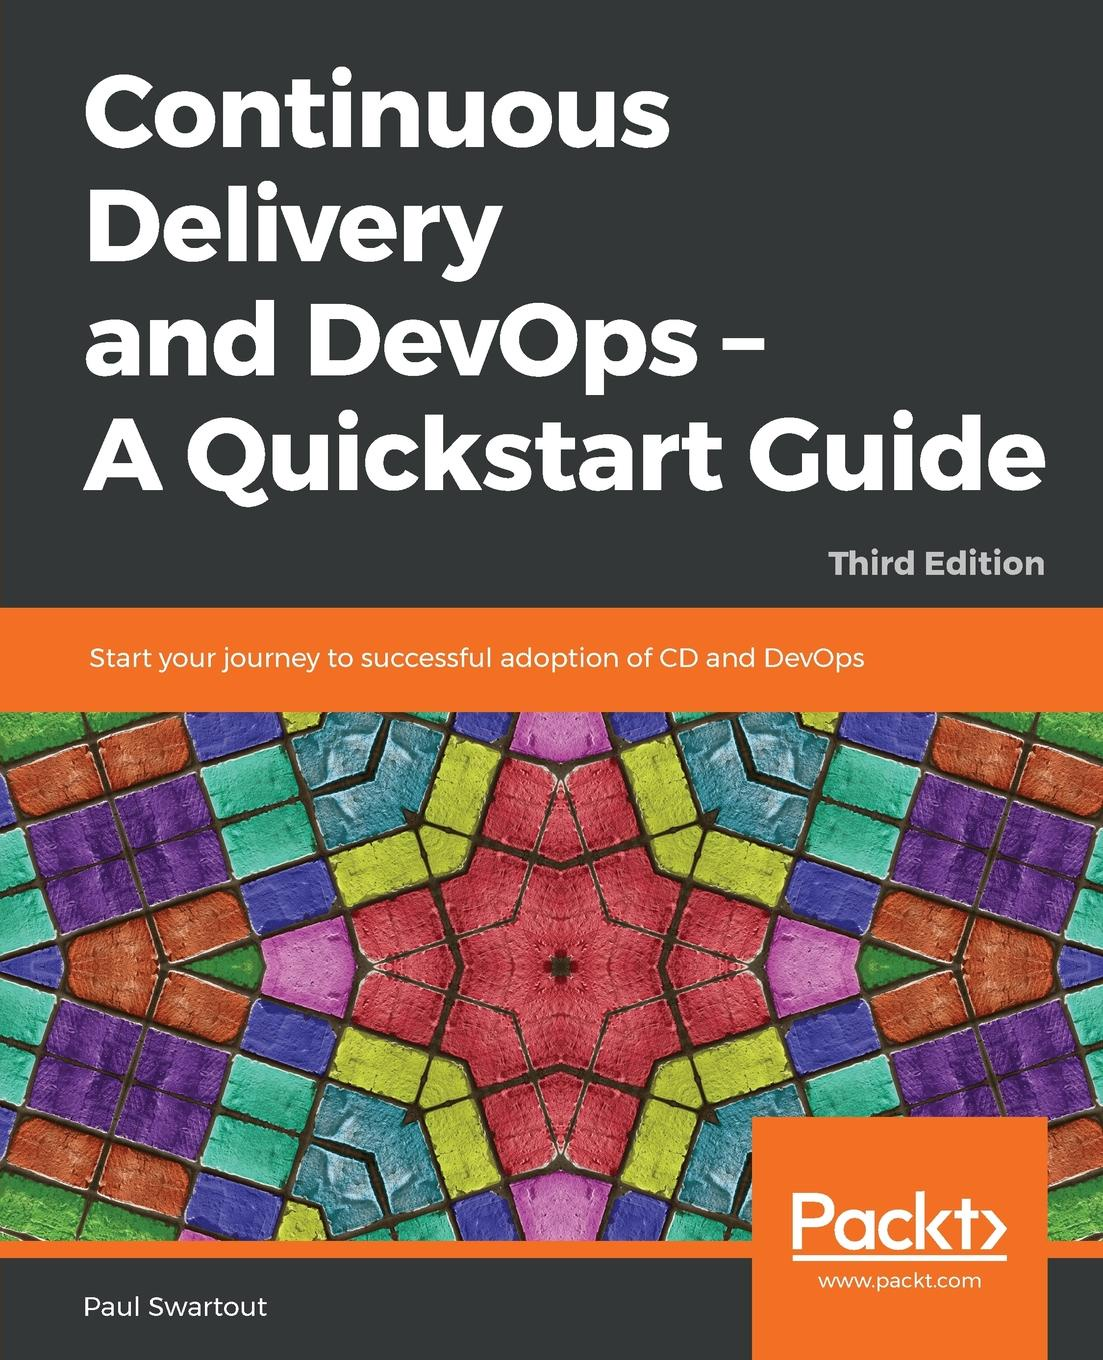 Paul Swartout Continuous Delivery and DevOps - A Quickstart Guide - Third Edition